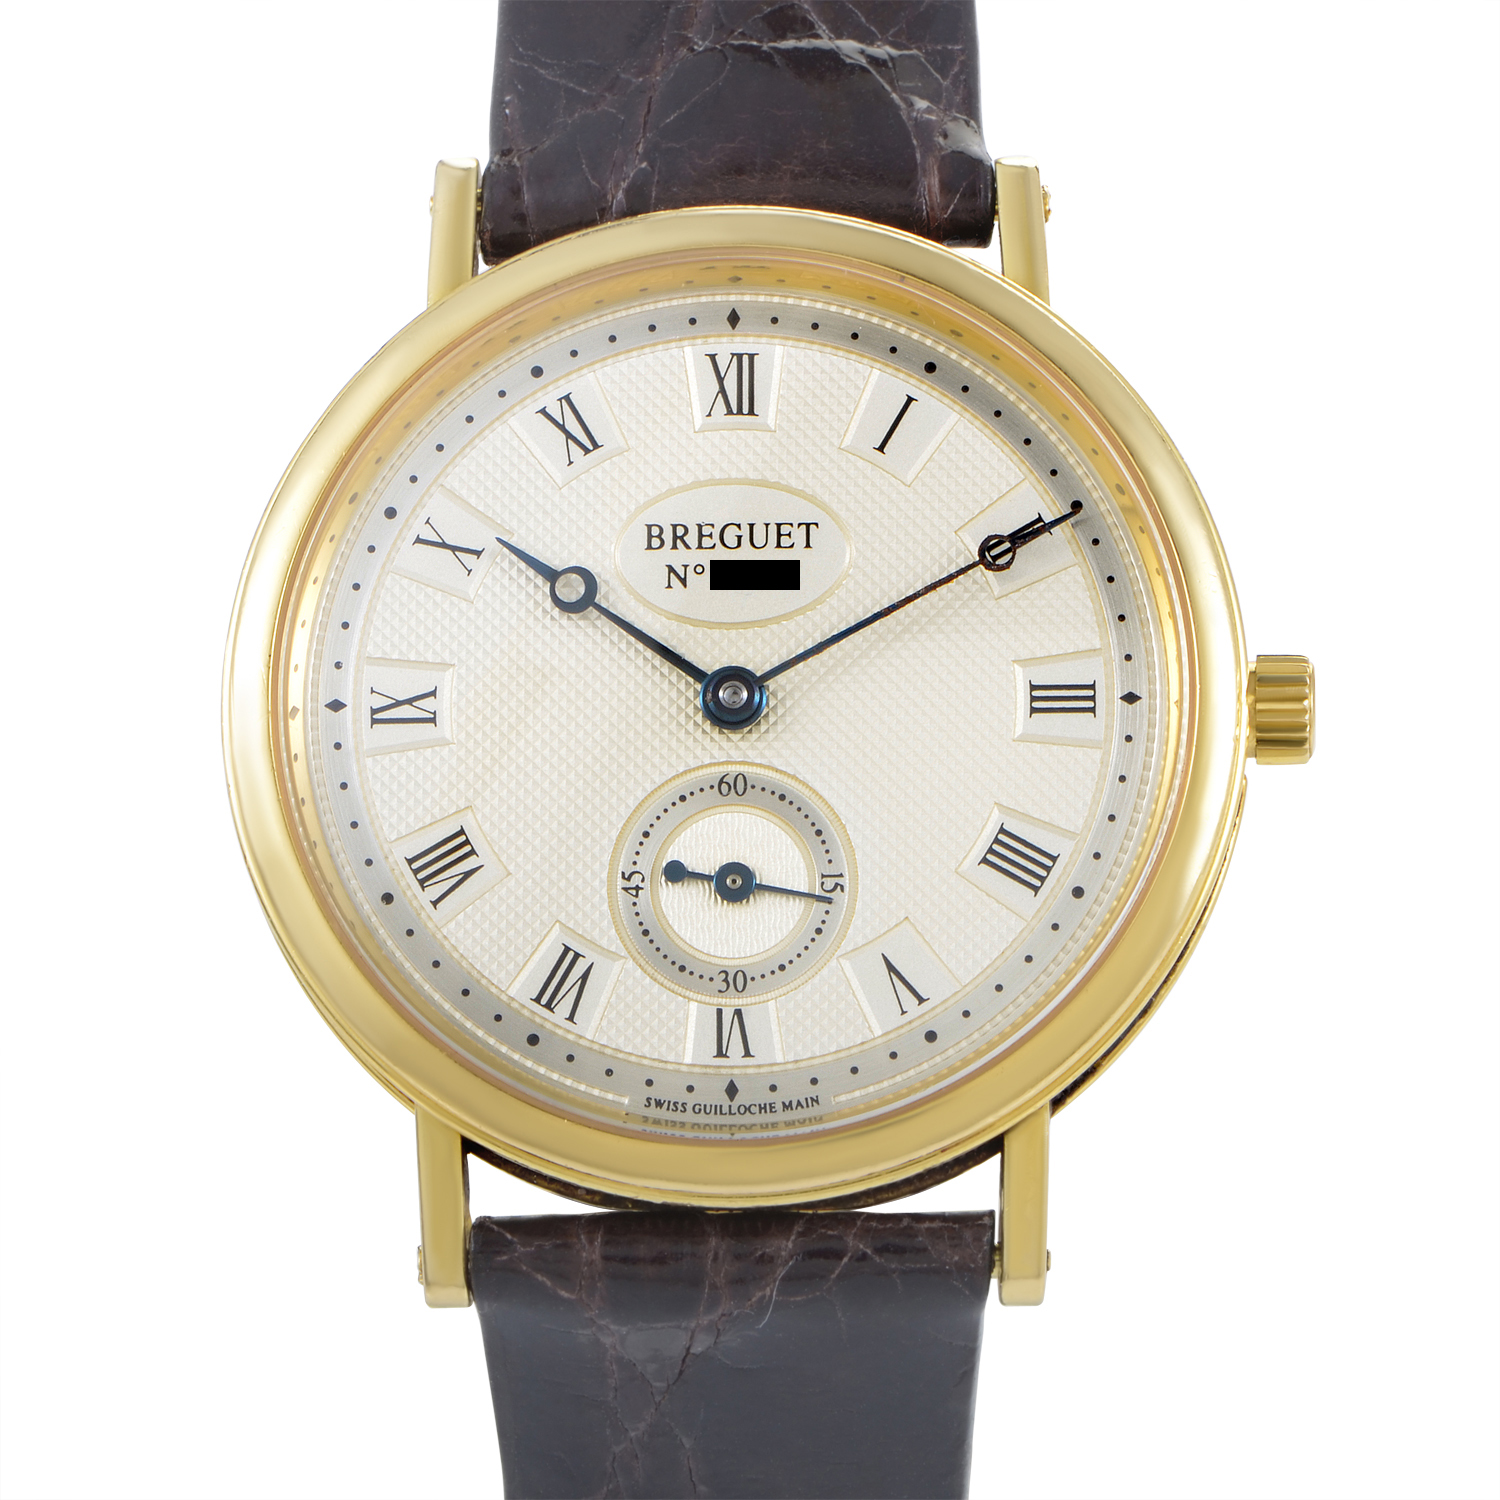 Breguet Classique Men's Manually Wound Yellow Gold Watch 3910ba/15/286